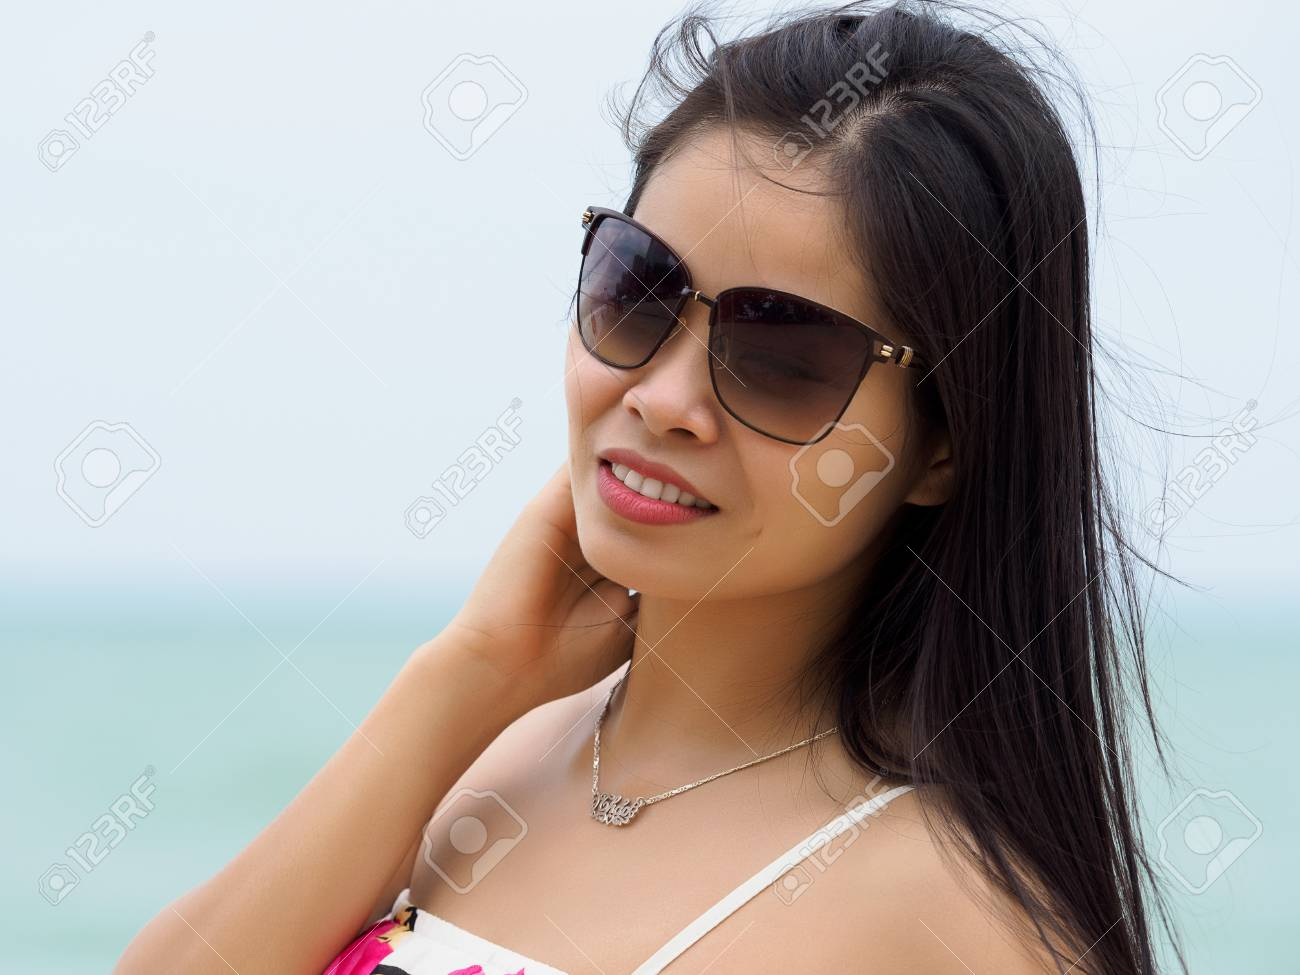 0302abb082 Portrait of young beautiful asian woman wearing sunglasses and standing on  the beach. Summer time